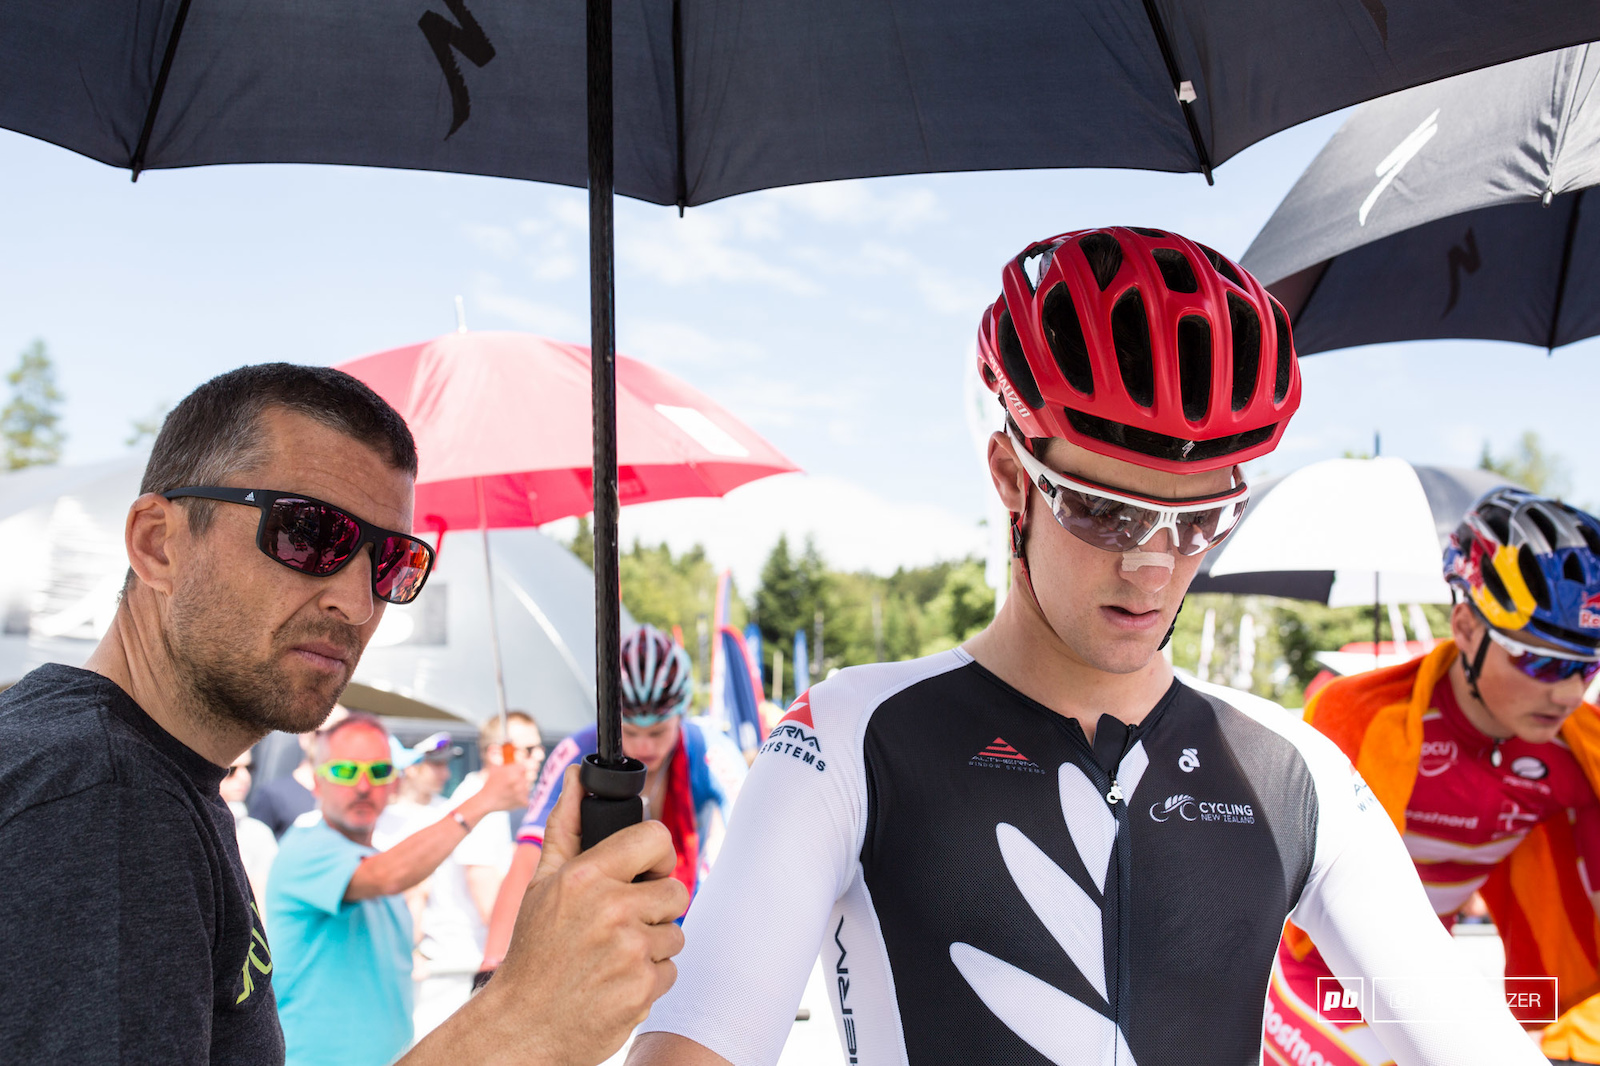 Christoph Sauser supporting the Specialized riders. Sam Gaze getting ready for the race.